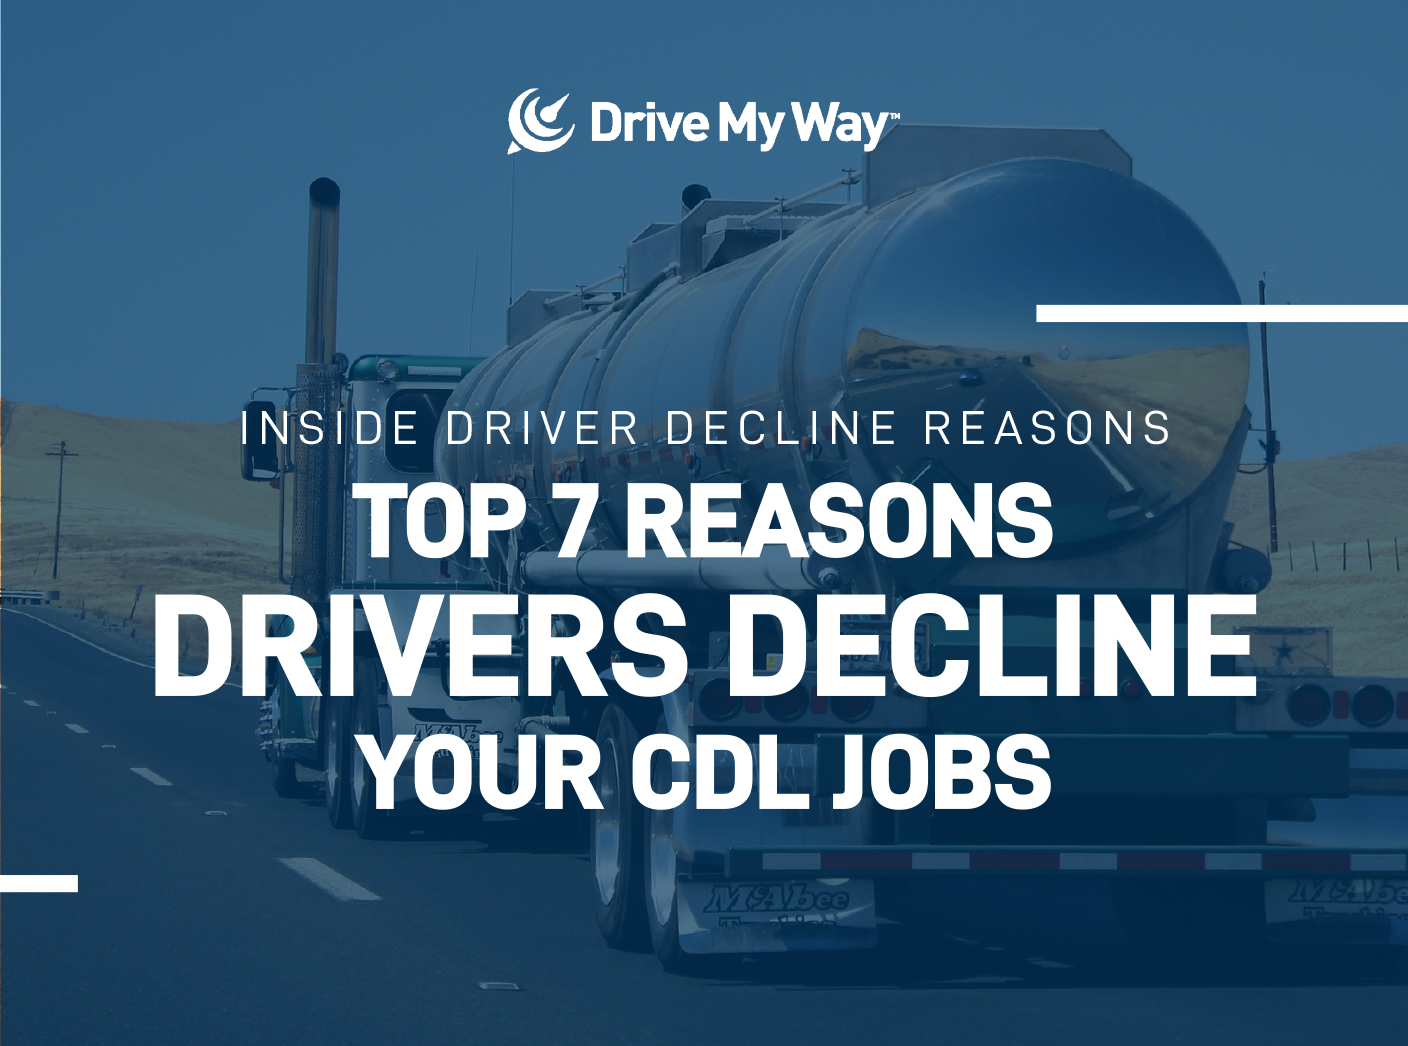 Top 7 Reasons Drivers Decline Your CDL Jobs